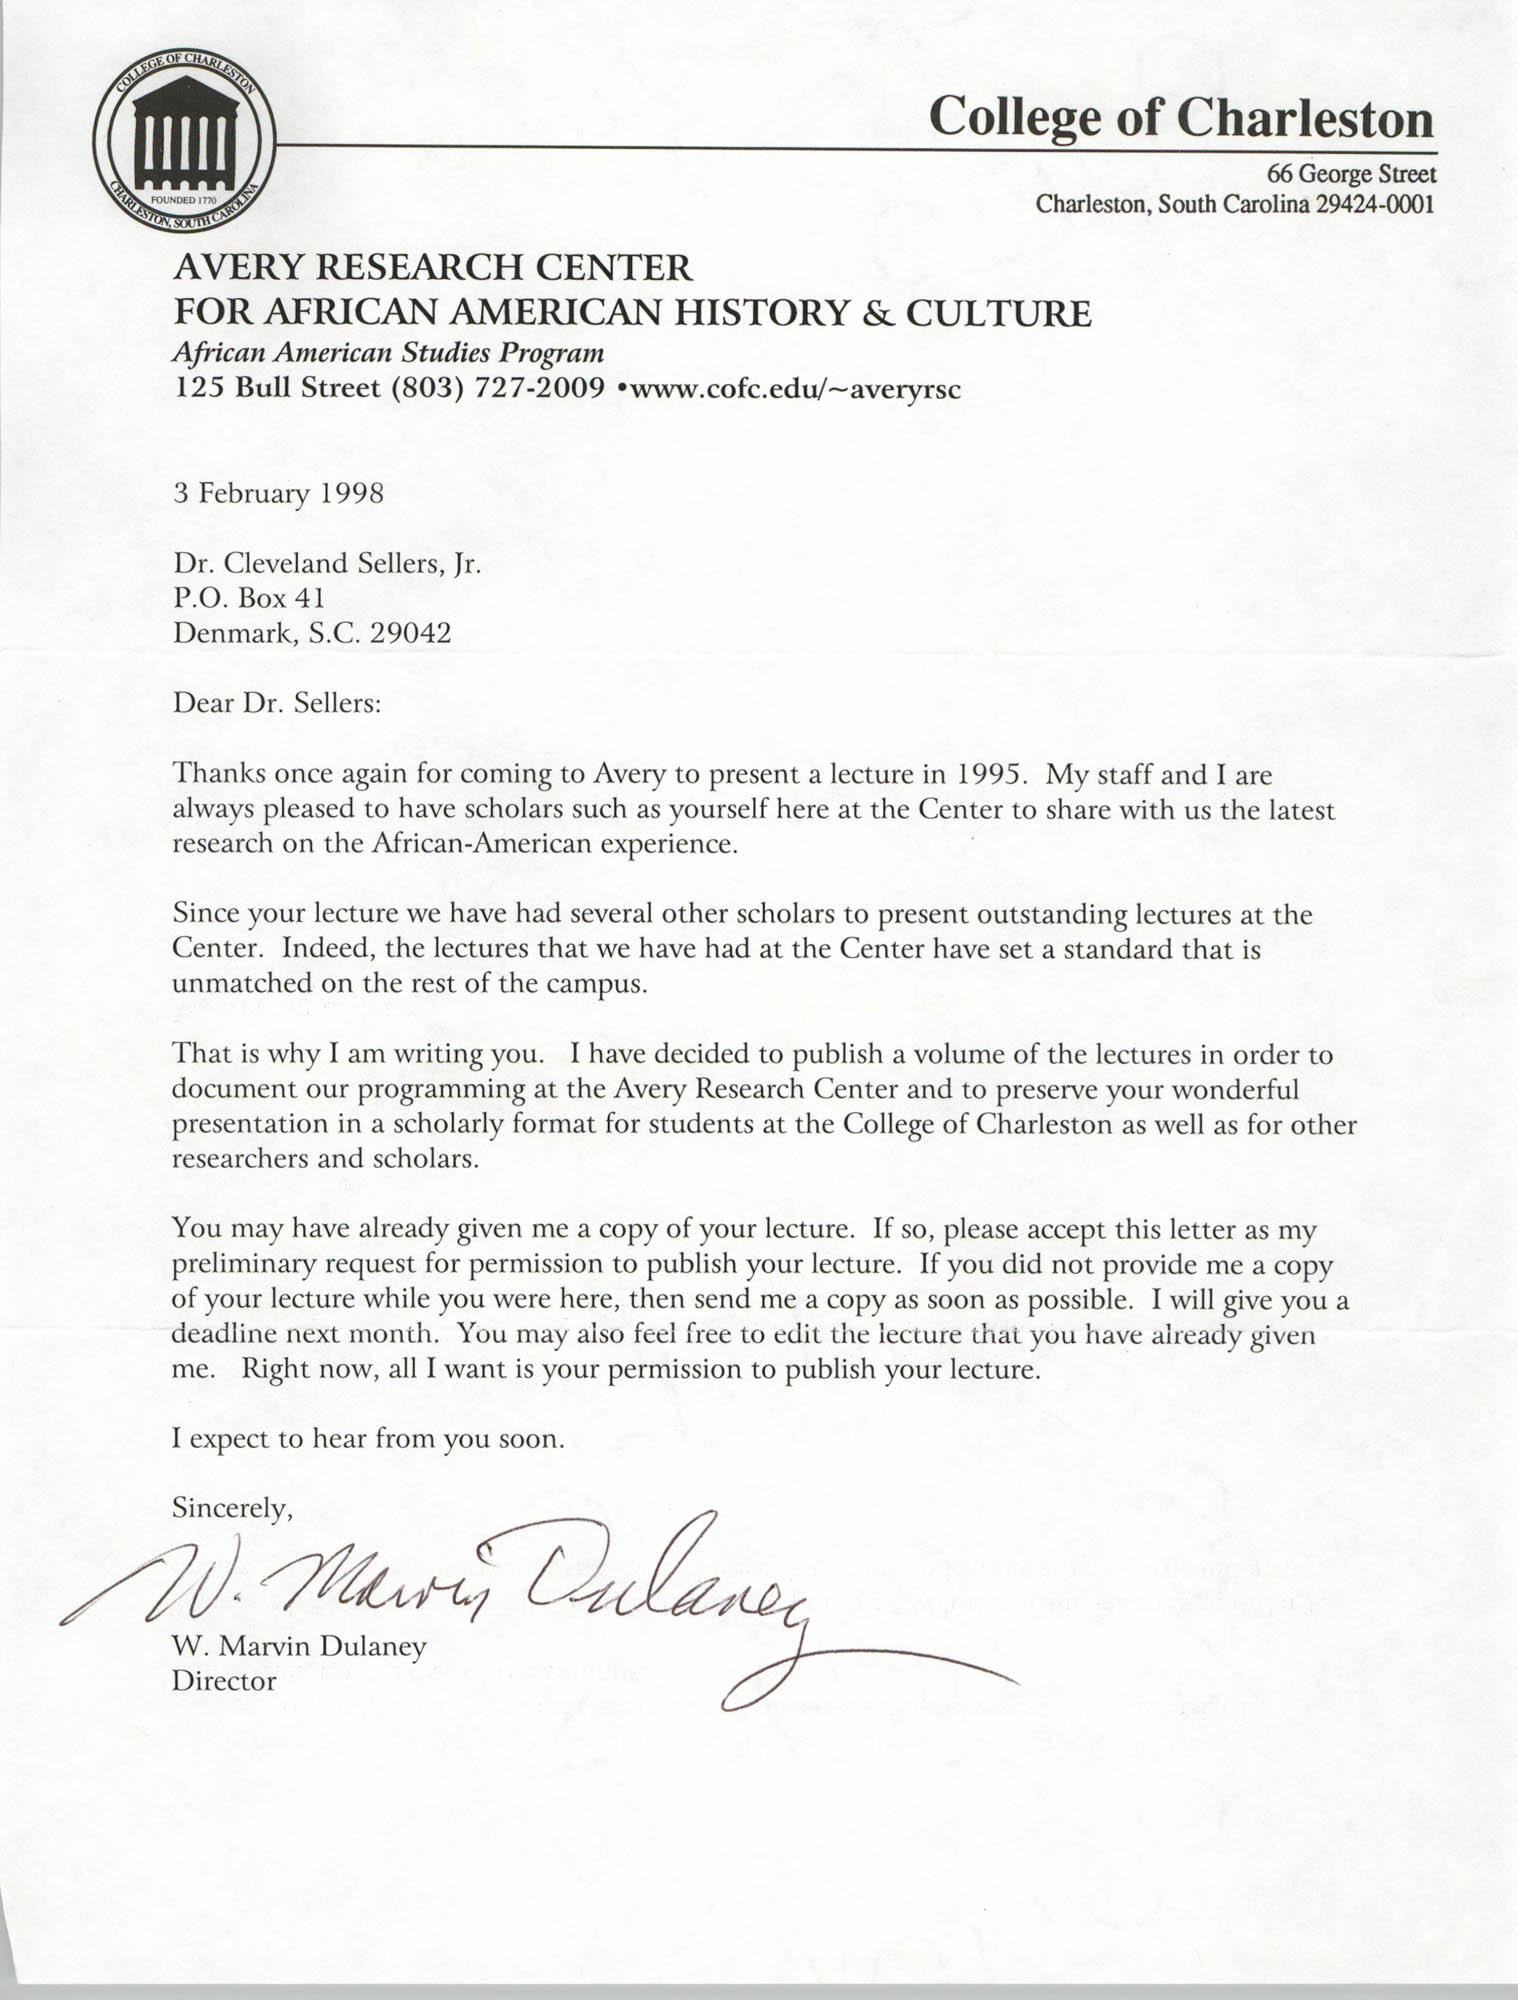 Letter from W. Marvin Dulaney to Cleveland Sellers, February 3, 1998